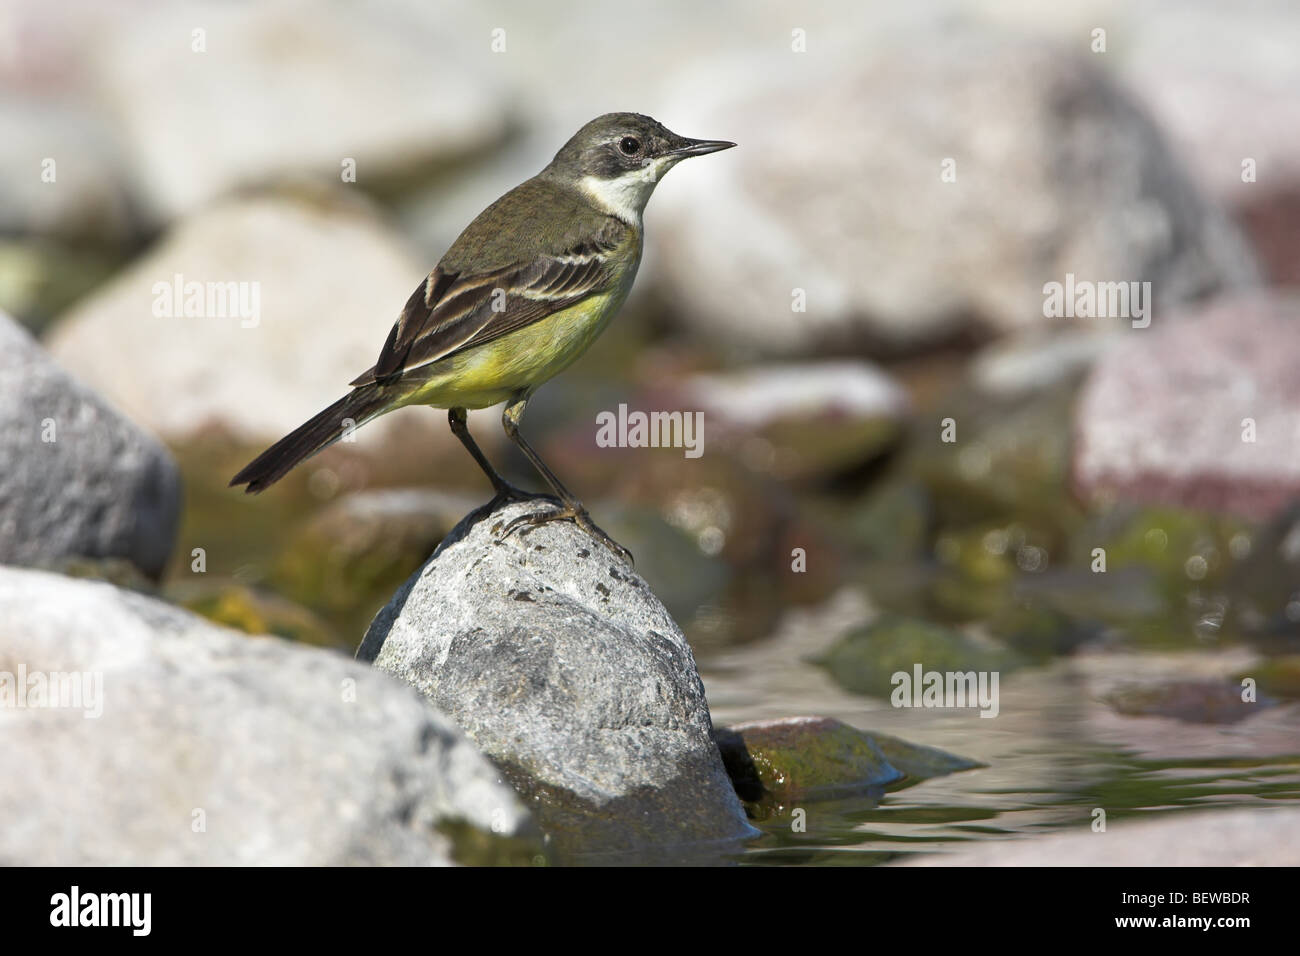 Black-headed Wagtail (Motacilla flava feldegg) sitting on stone on the waterfront, side view - Stock Image